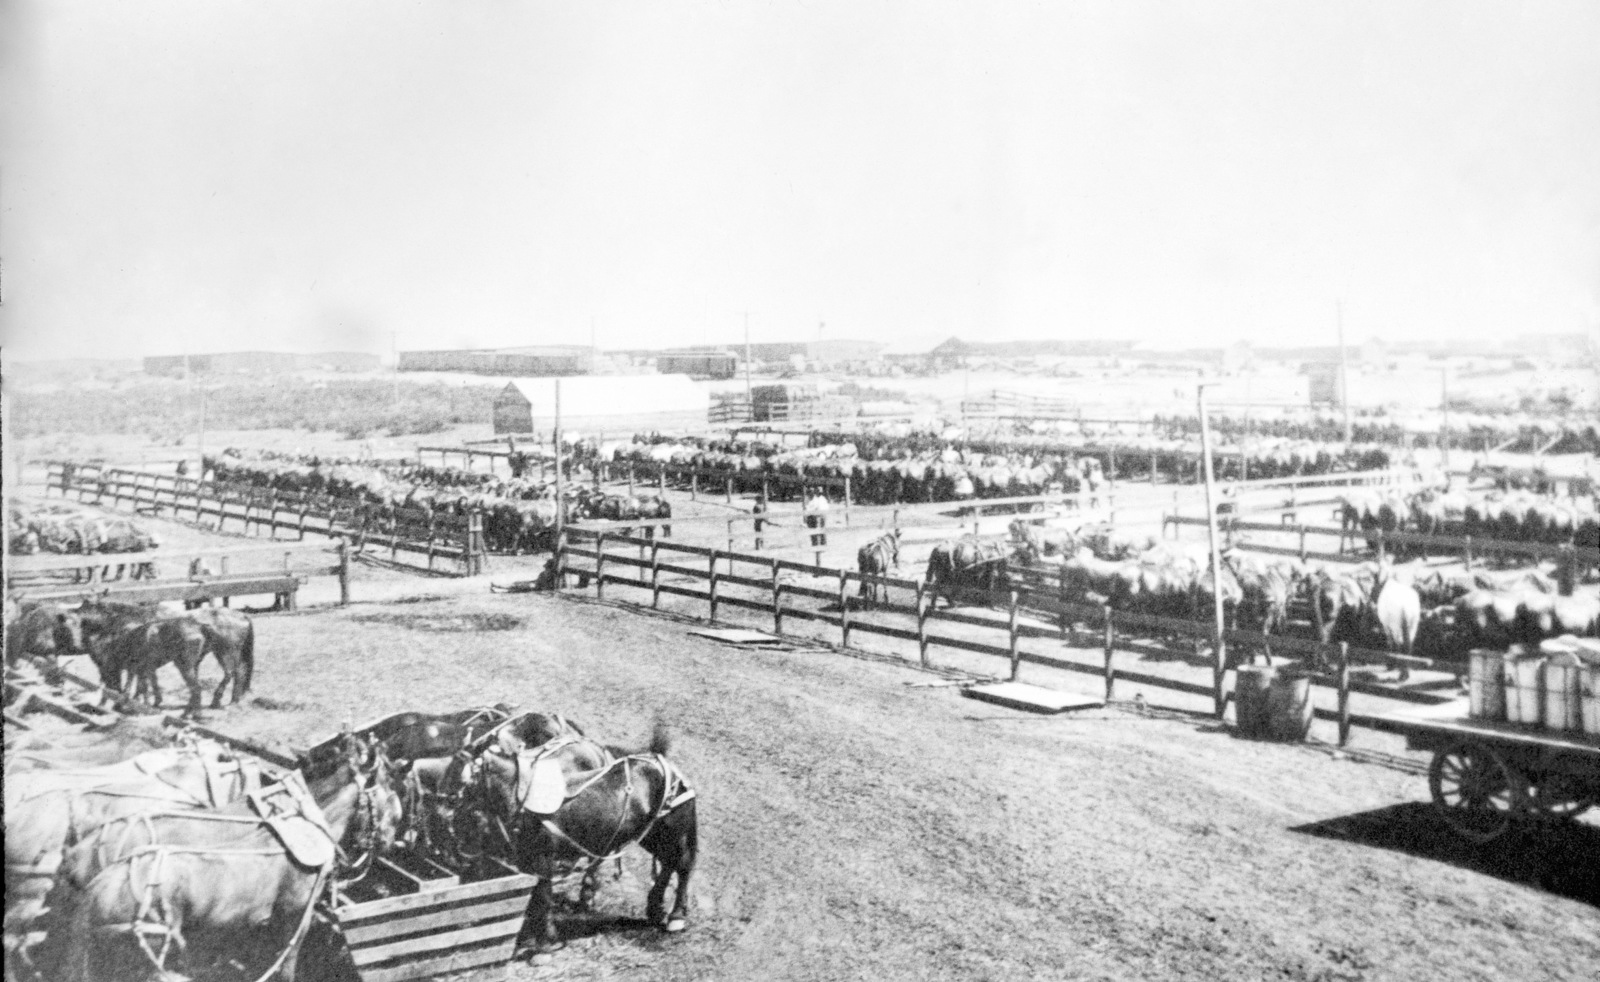 An overview of some of the 1200 horses and mules corralled at Camp Kearny, California (CA). The teams furnished by the Pioneer Trucking Company. Note: In the future this area became the US Navy (USN) Naval Air Station Miramar. (Exact Date Shot Unknown)